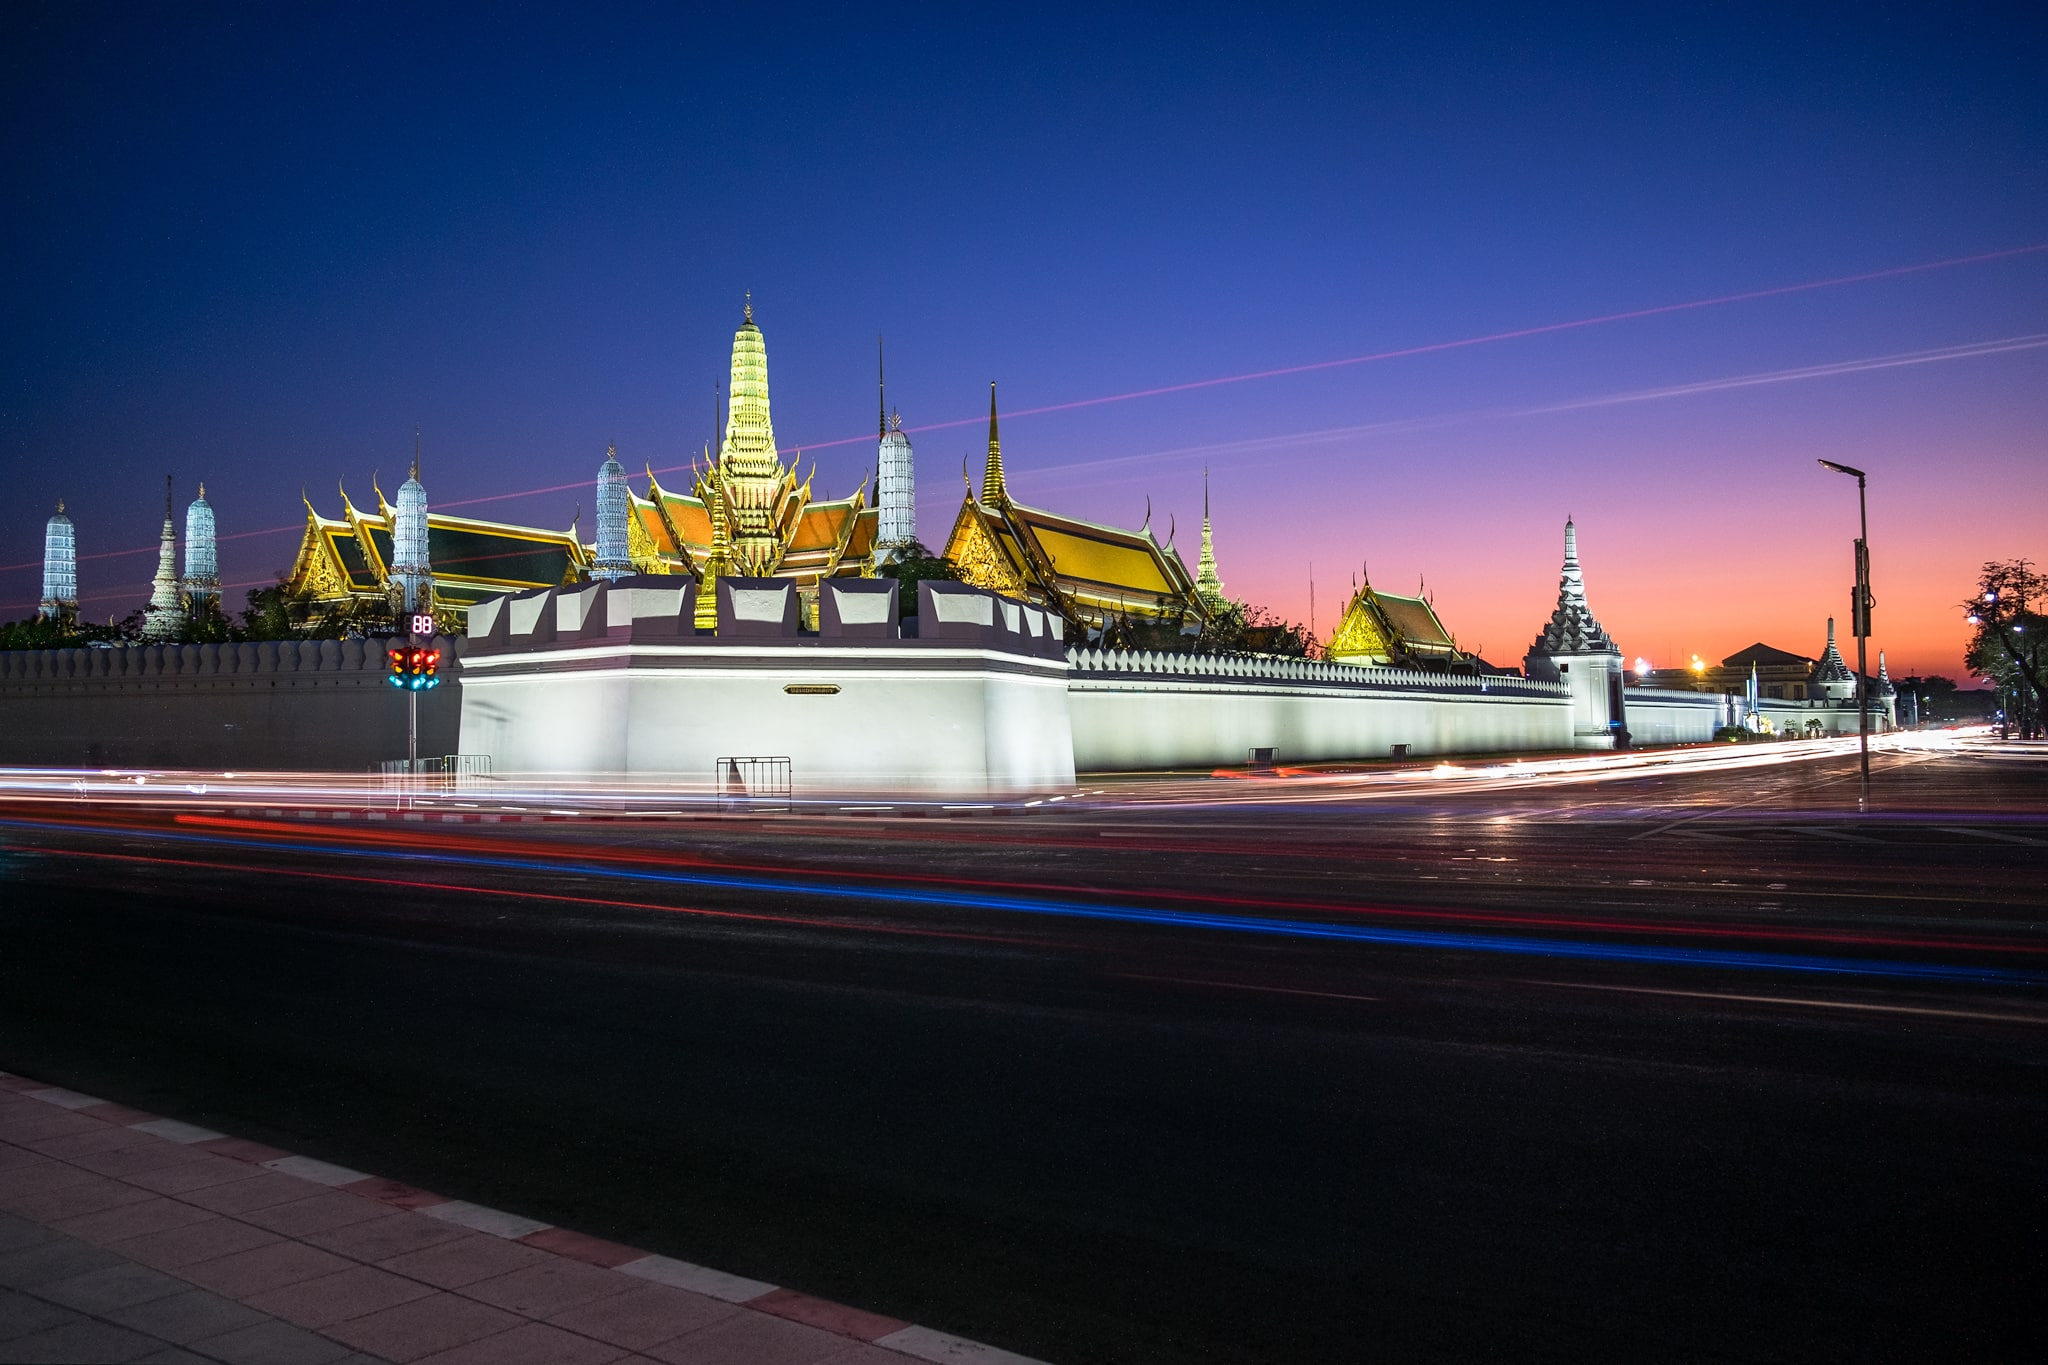 Light trails from cars in front of the Grand Palace in twilight. Bangkok, Thailand.